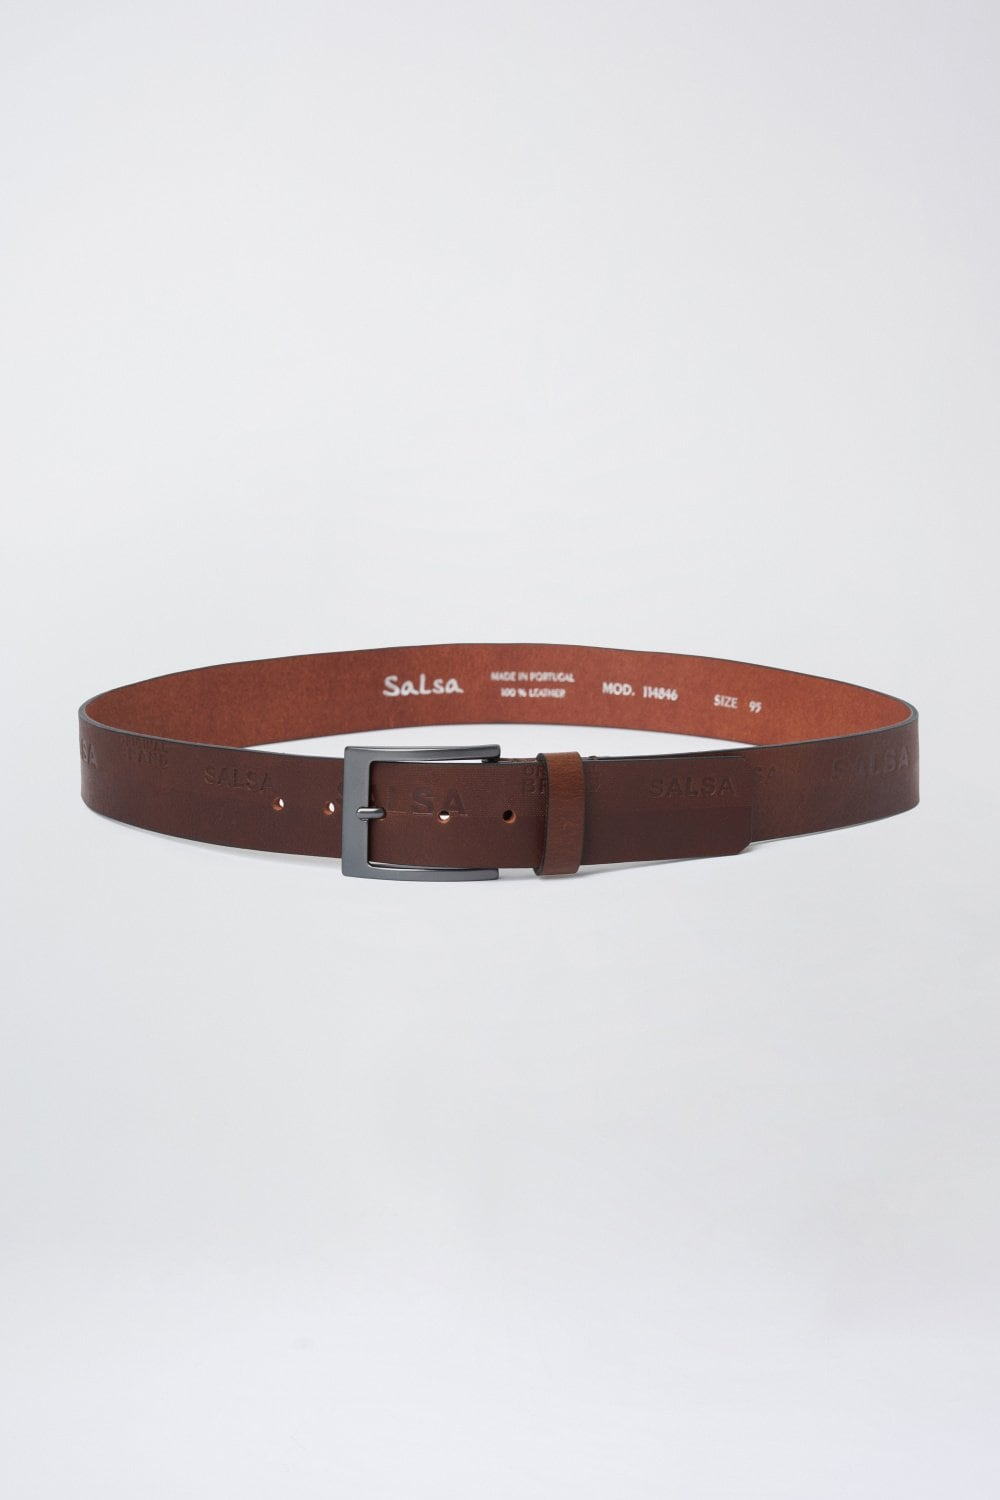 Leather belt with logo - Salsa